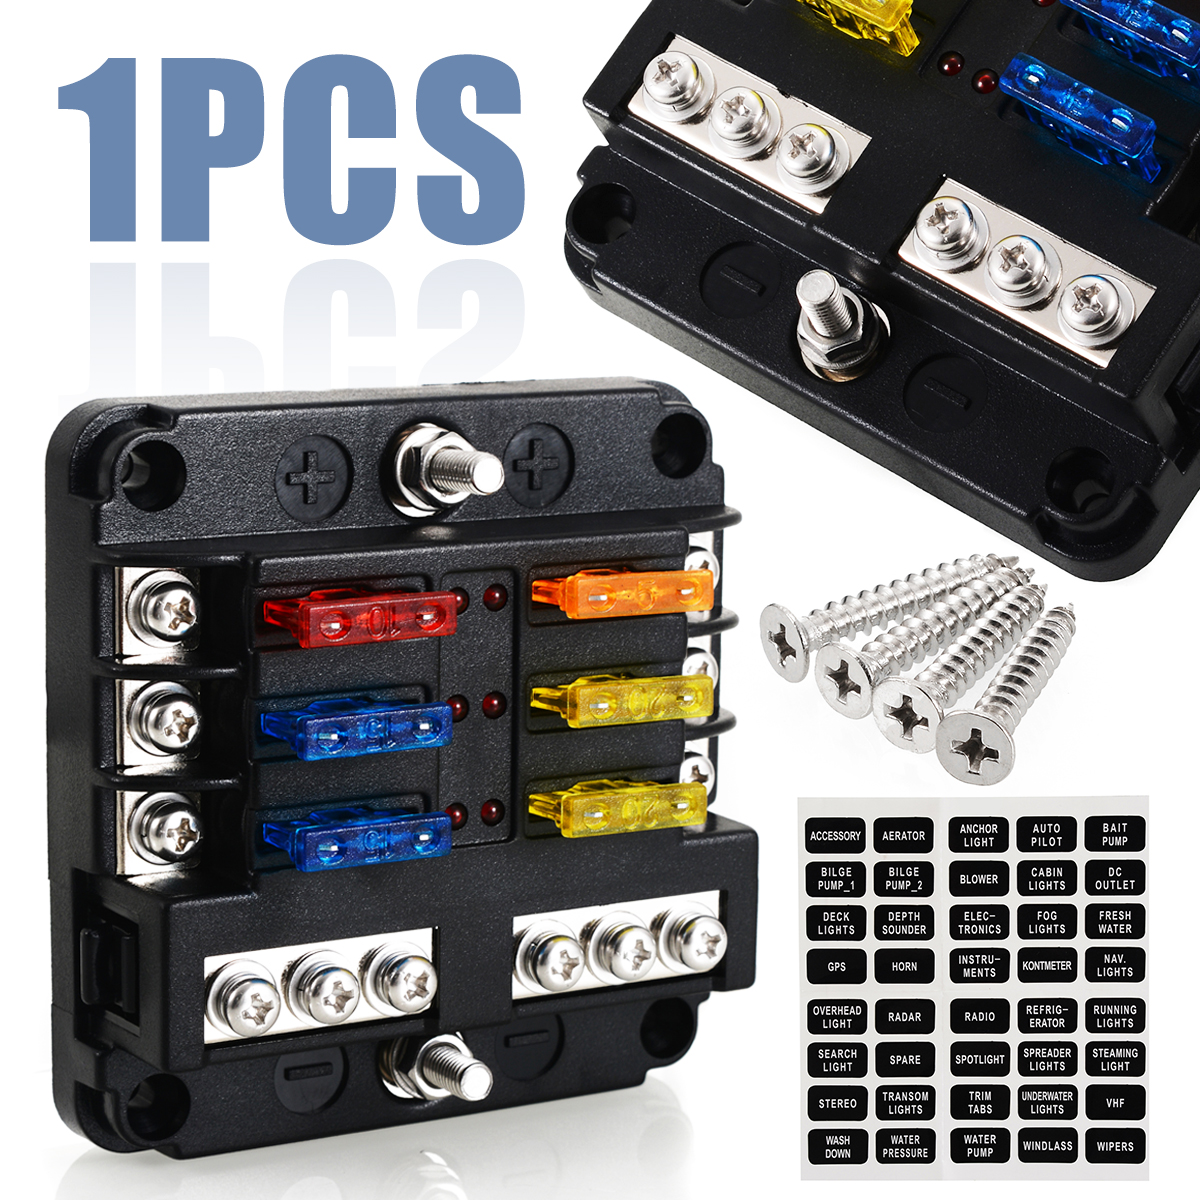 bus fuse box 6 way blade fuse holder box block case 12v 24v car truck marine bus bar fuse box 6 way blade fuse holder box block case